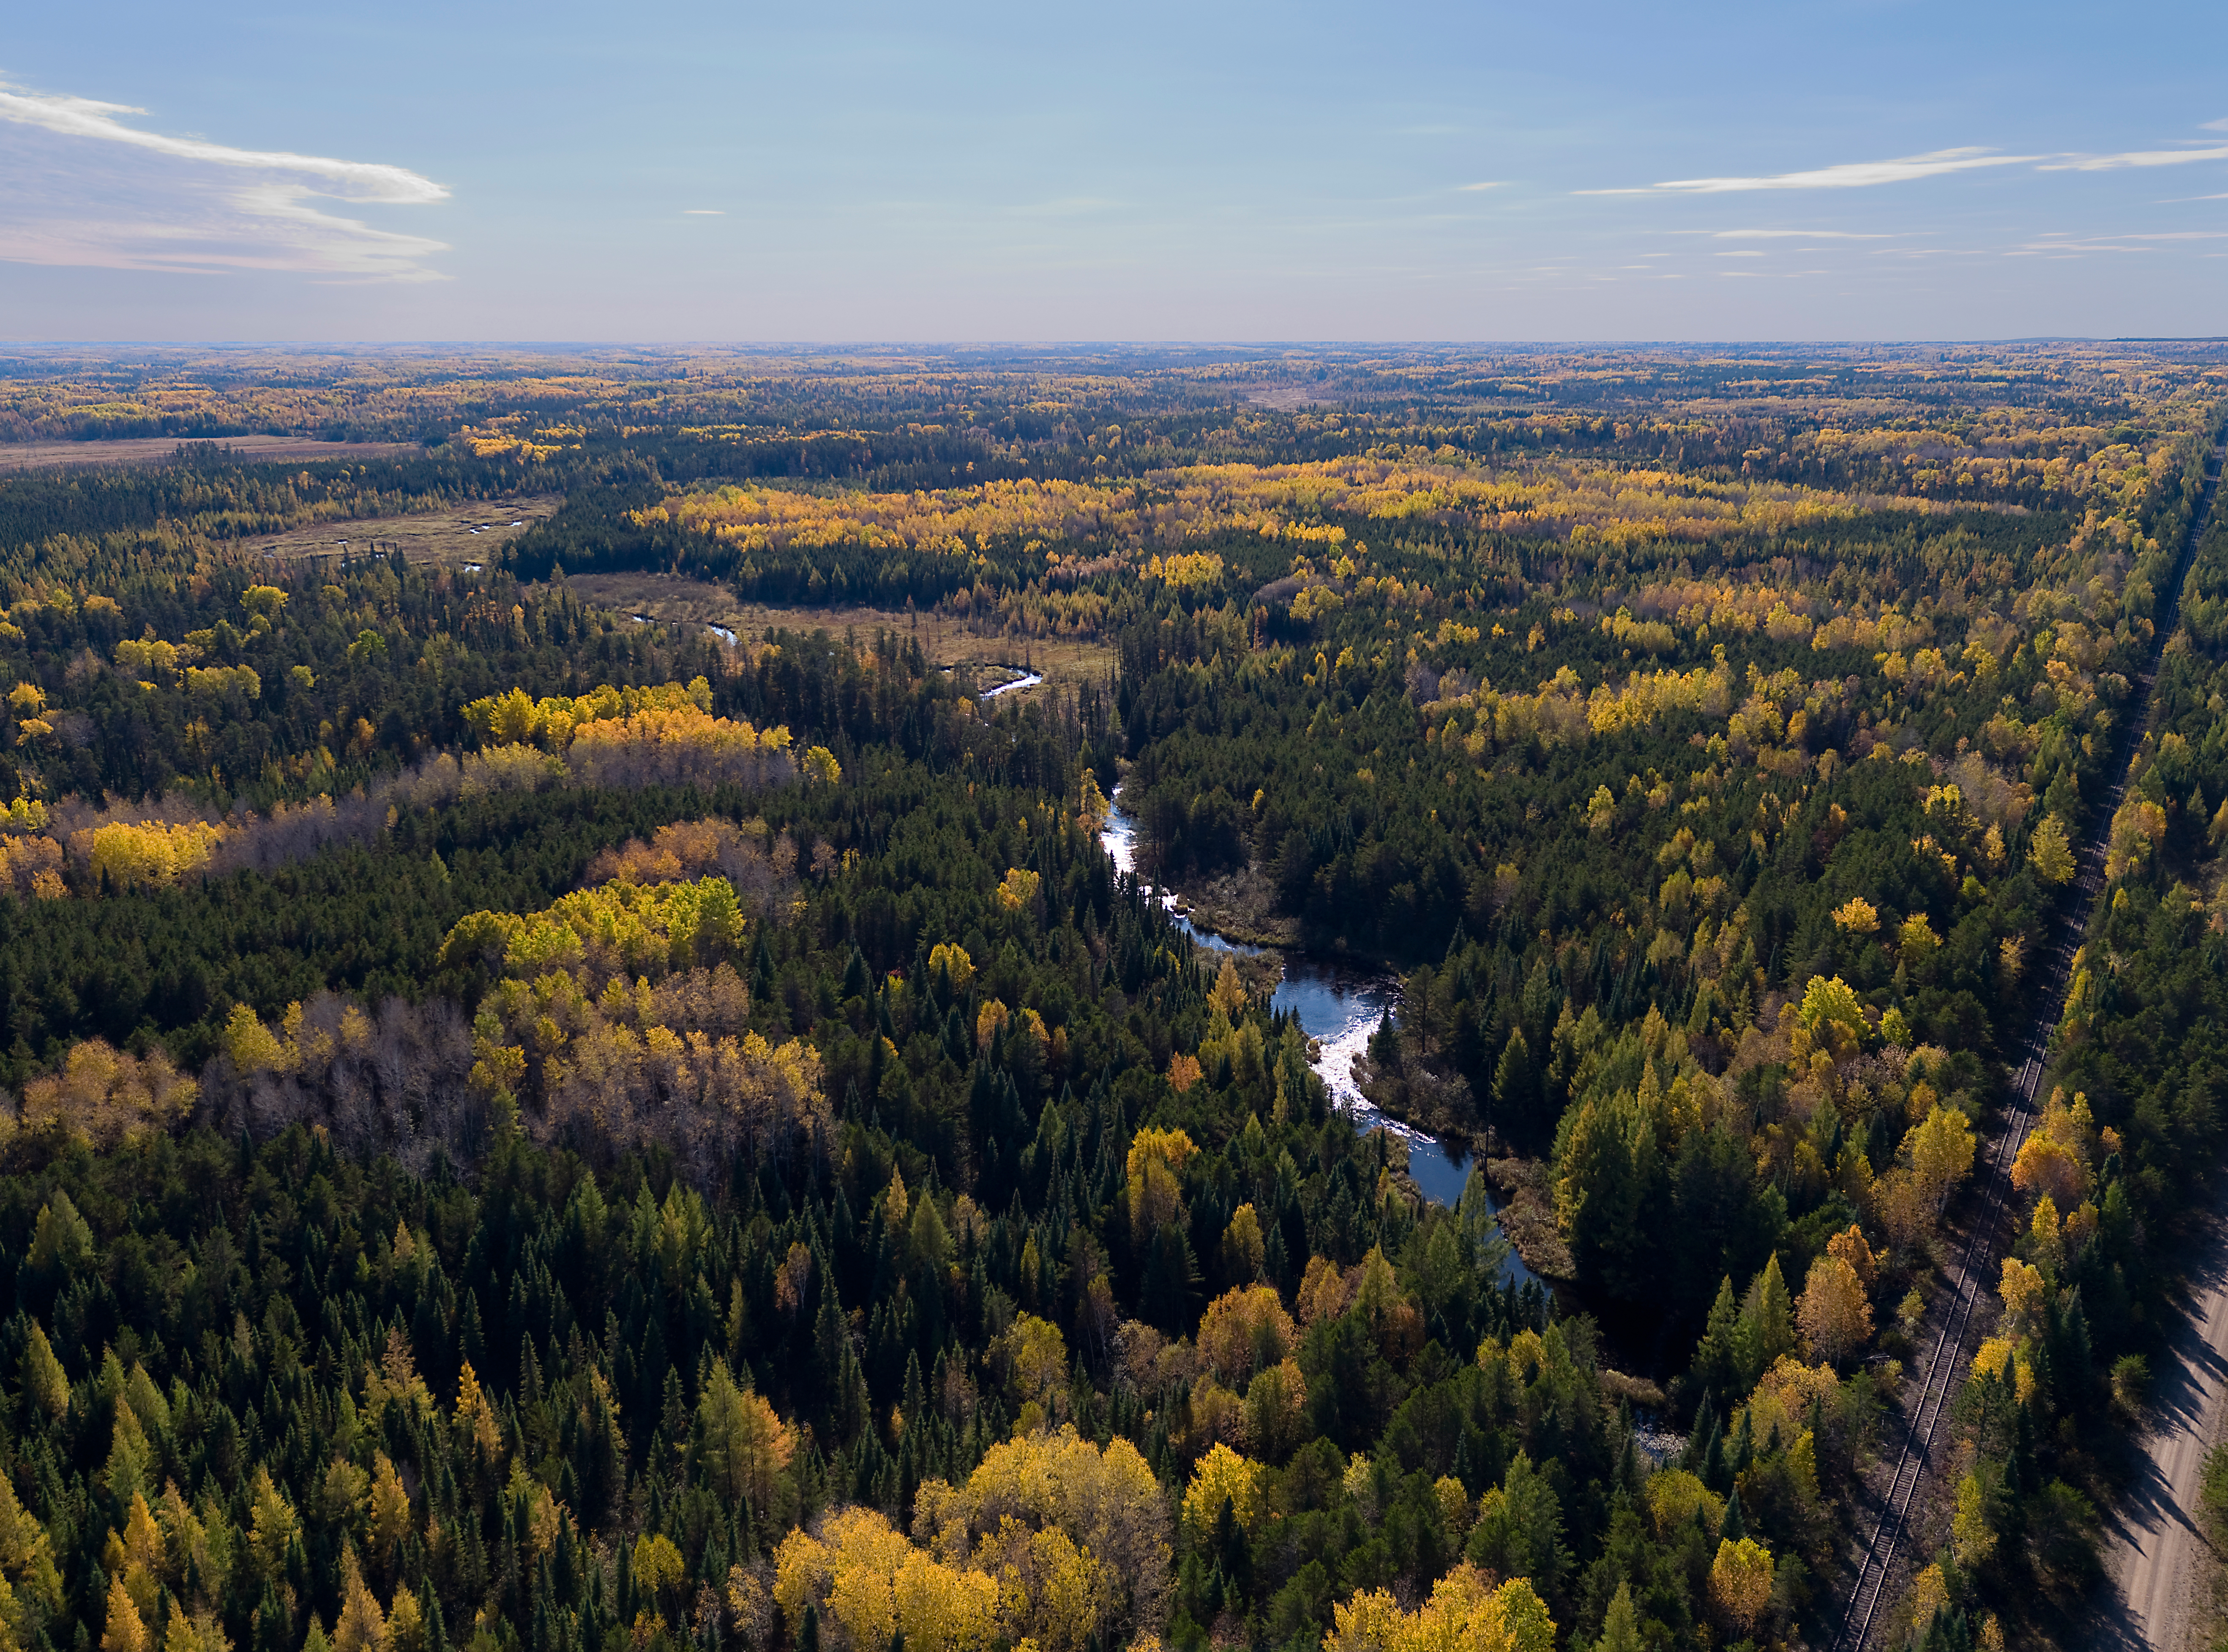 Partridge River in the area of PolyMet's proposed open pit mine. Photo Credit: Rob Levine